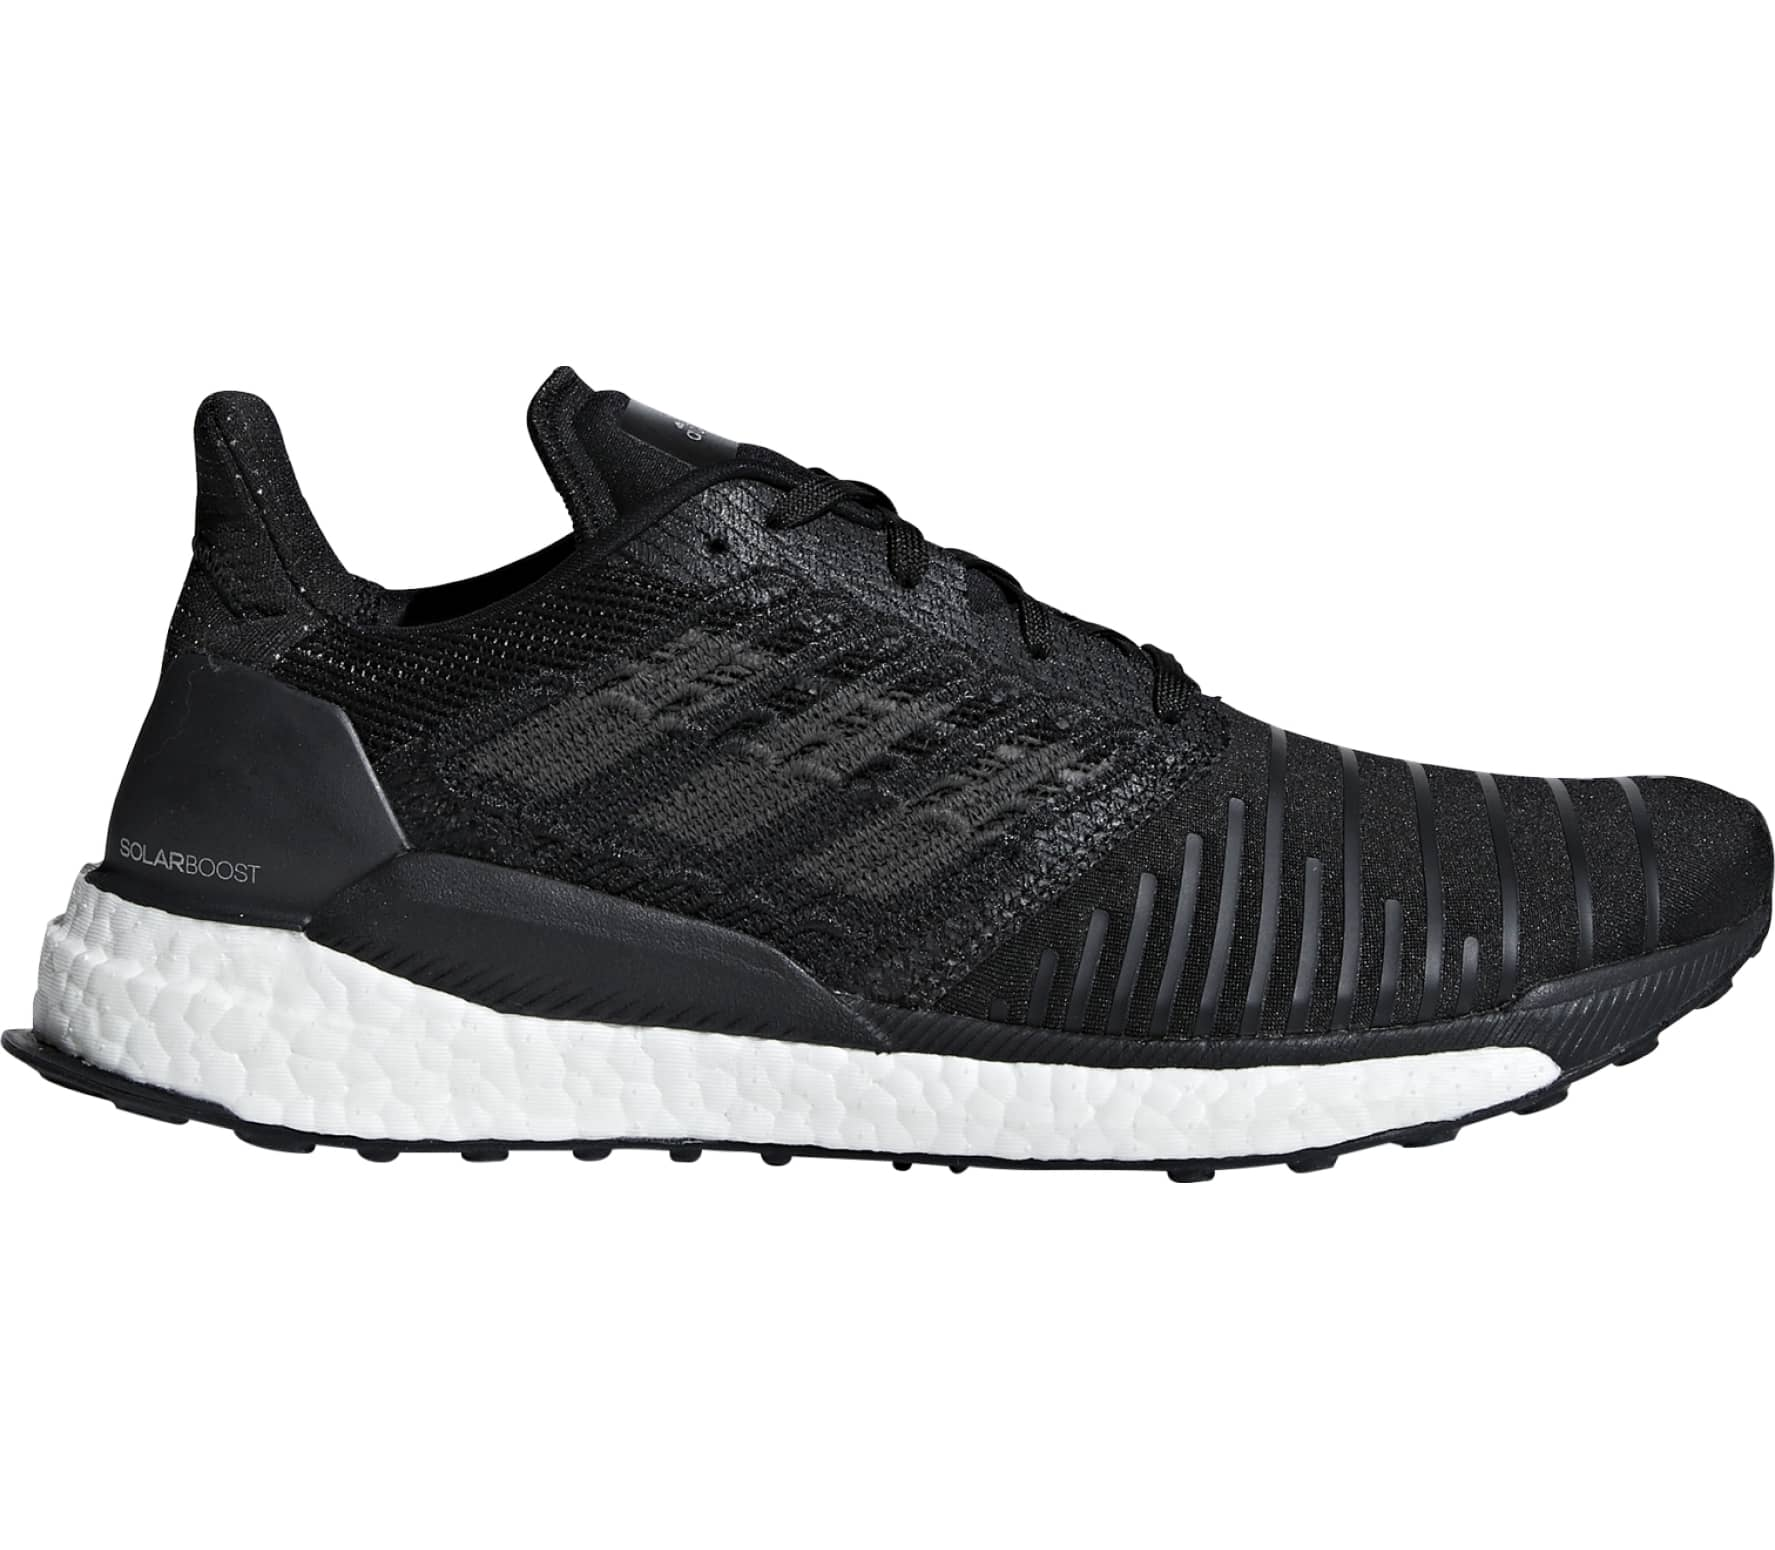 3201d9ffd Adidas - Solar boost men s running shoes (black) - buy it at the ...